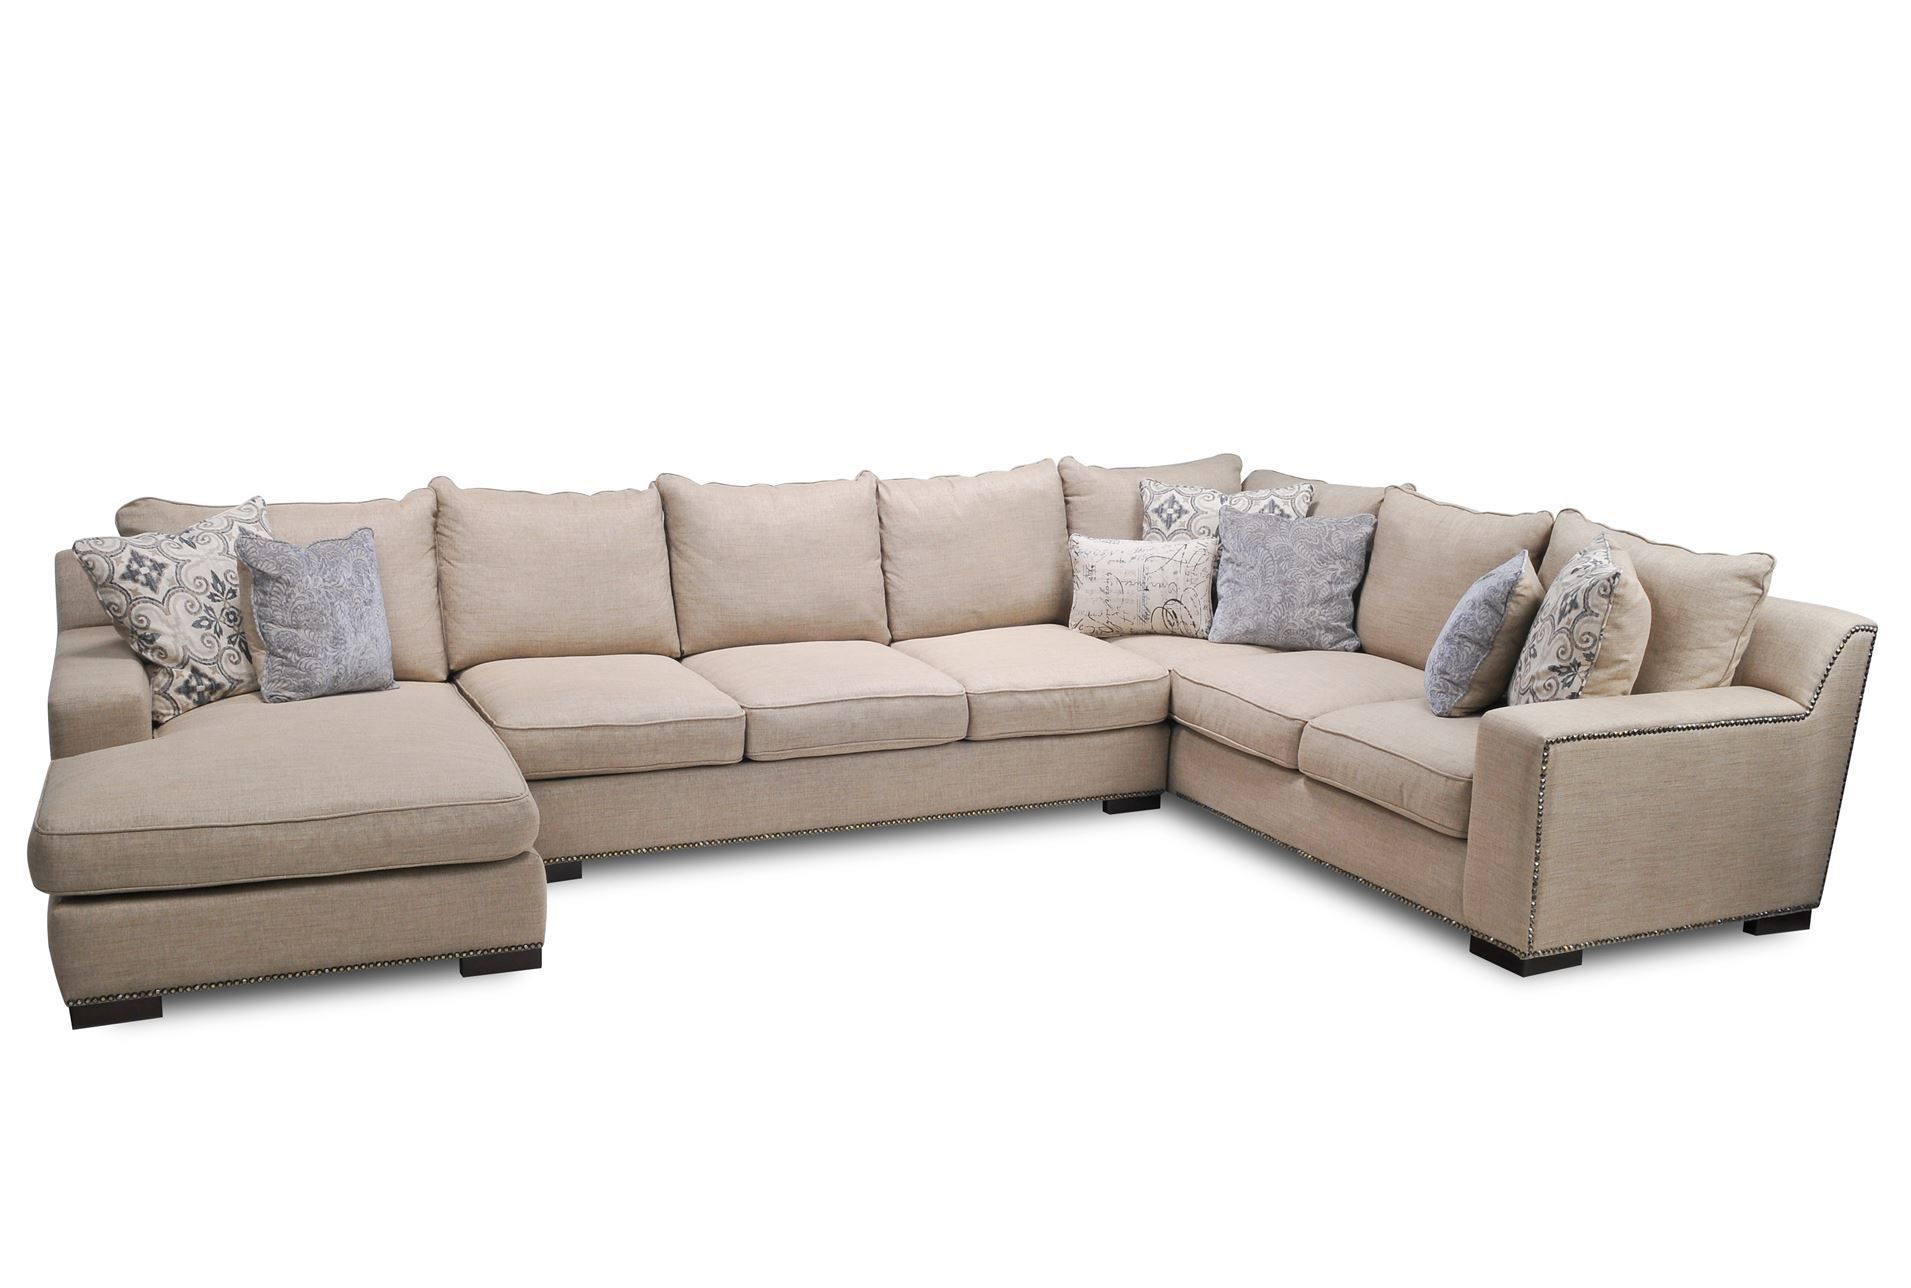 Way too big but liking this style Sultan 3 Piece Sectional